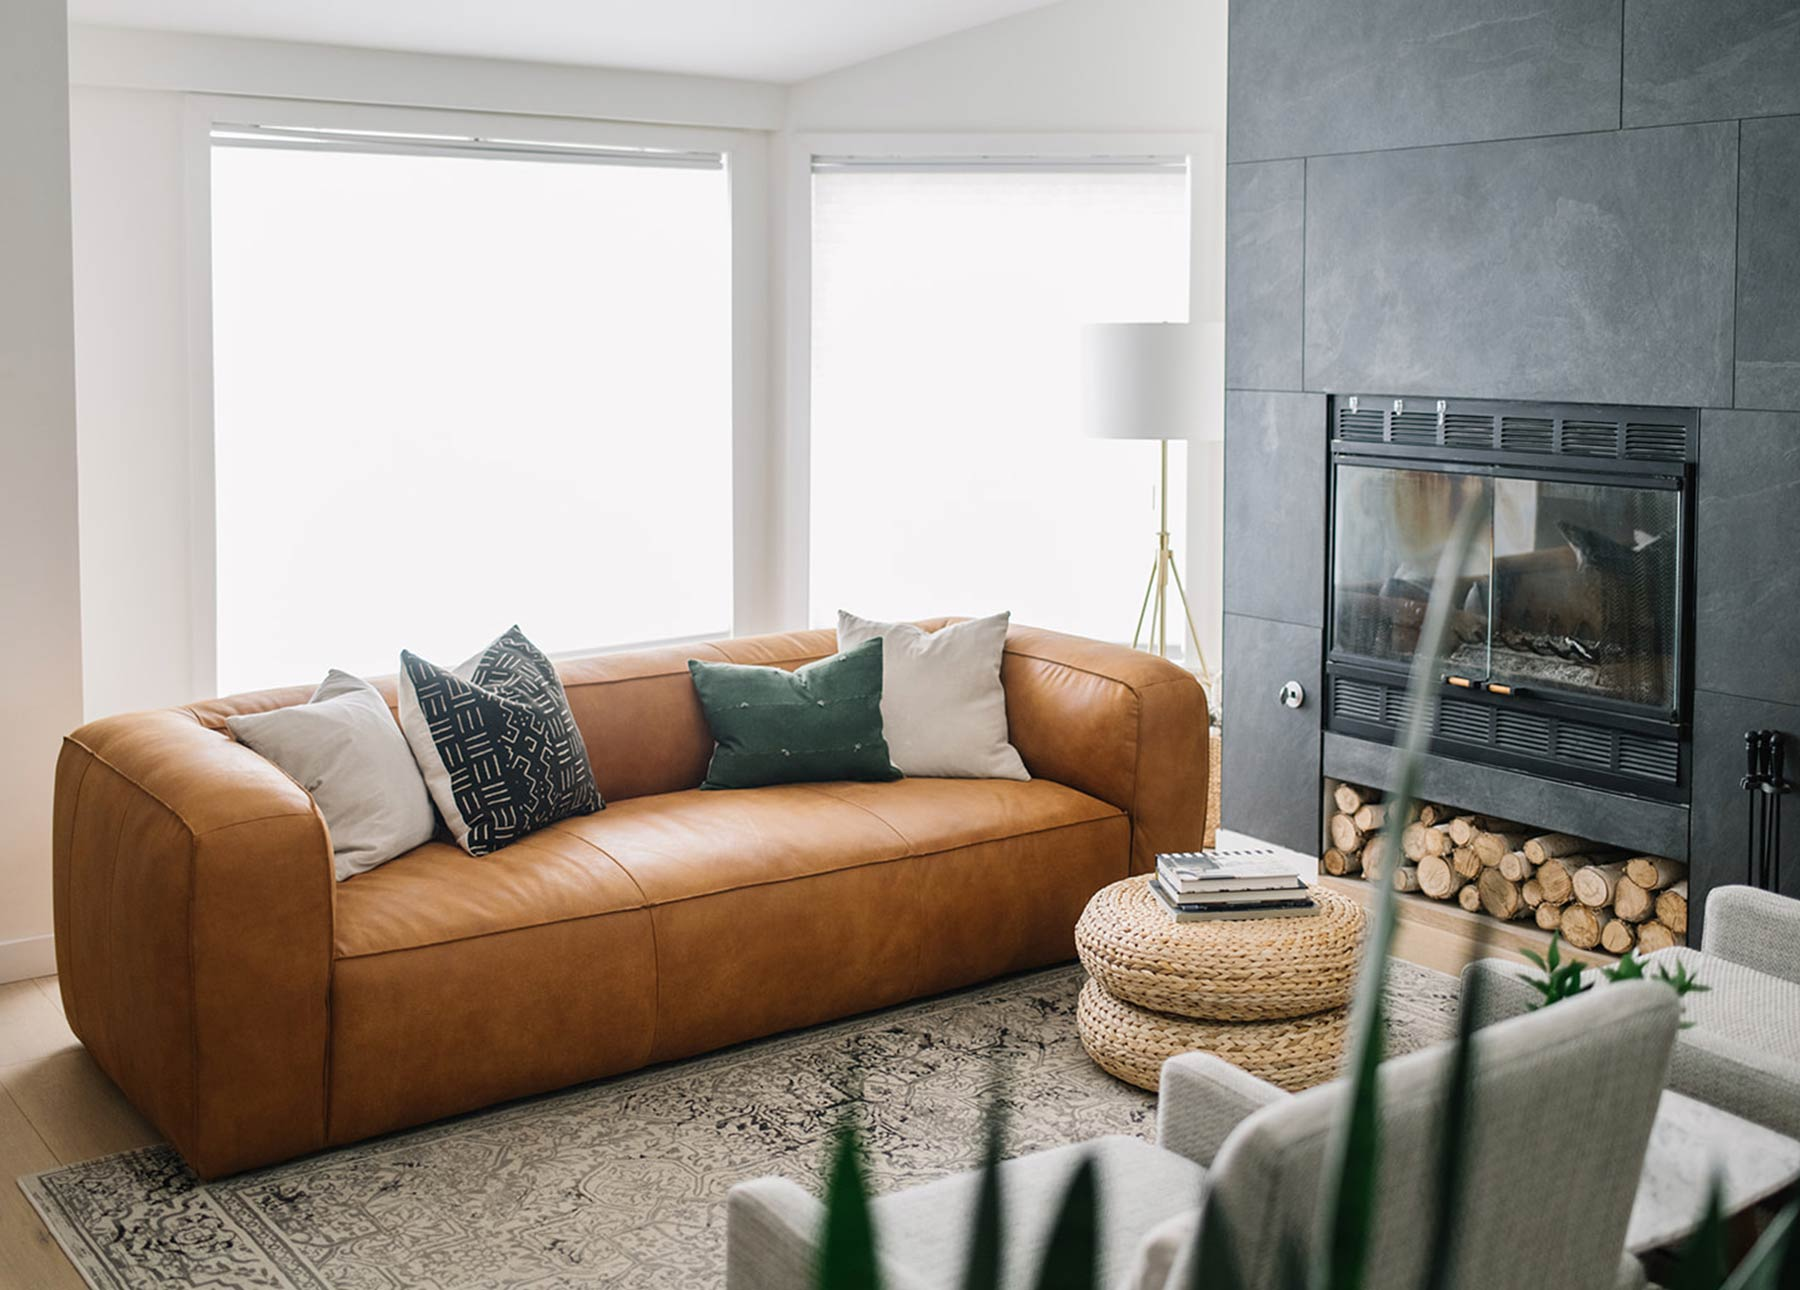 Kristina Lynne's living room, featuring Article's Cigar Rawhide Tan leather sofa